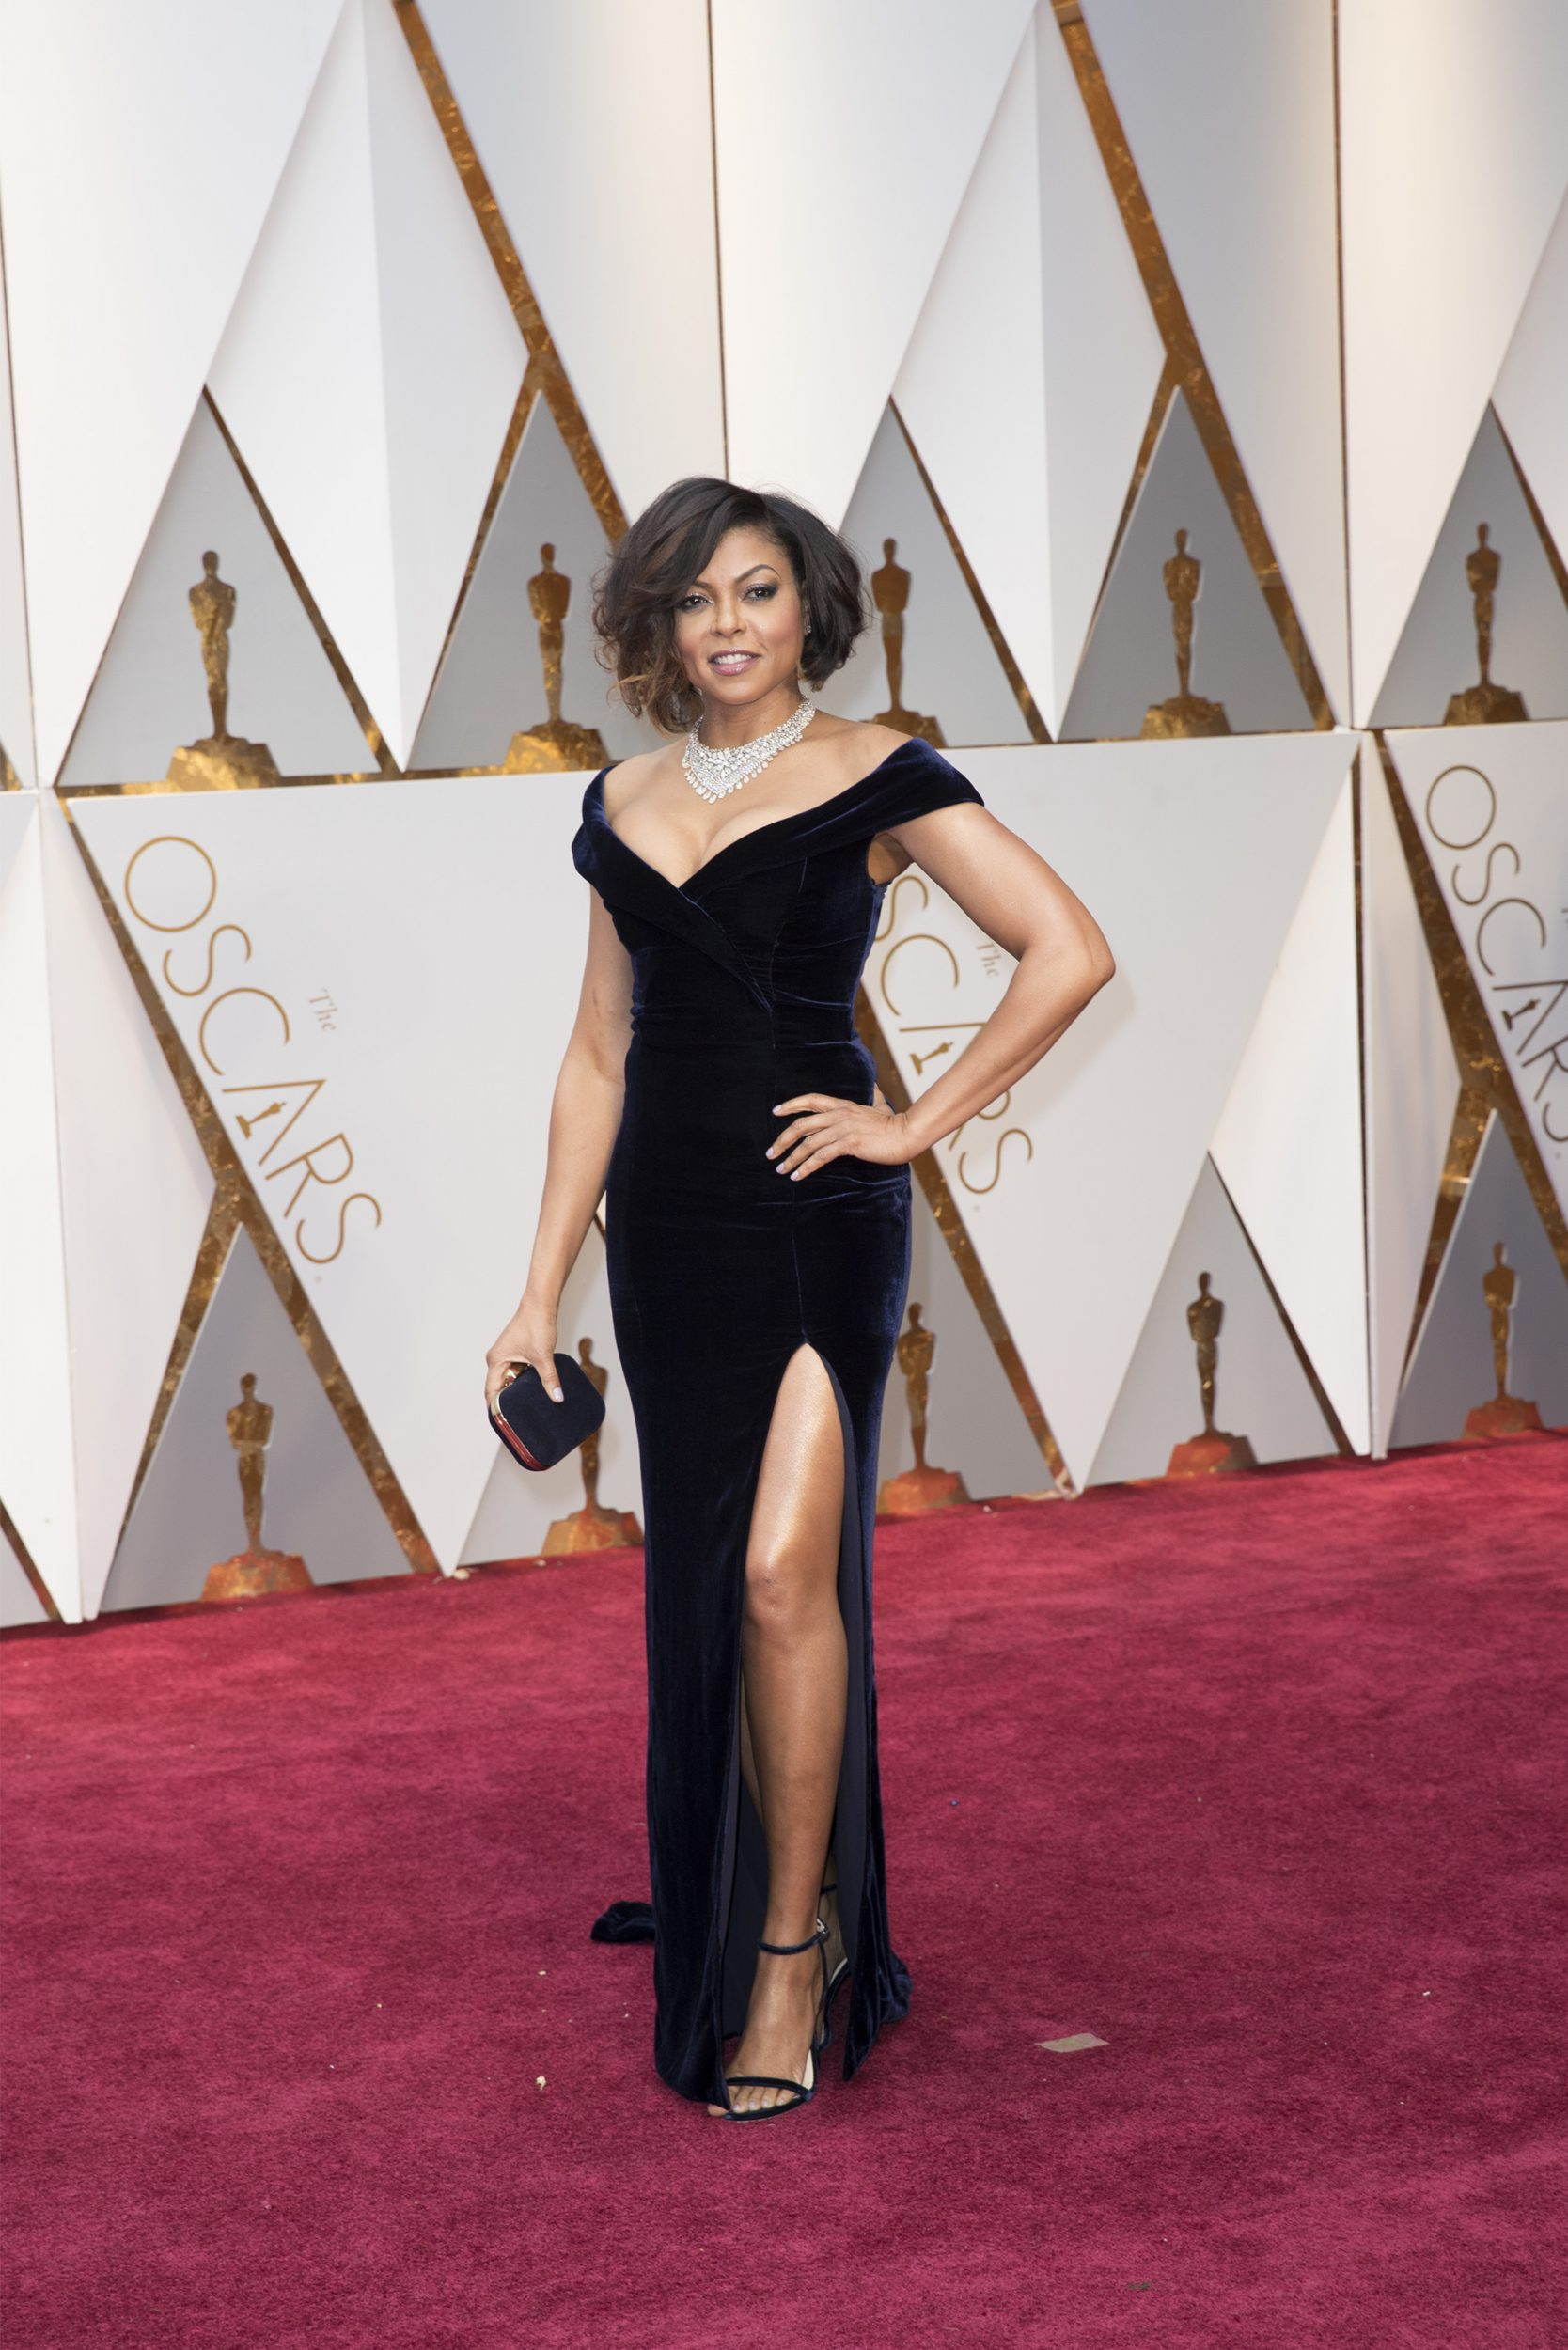 THE OSCARS(r) - The 89th Oscars(r)  broadcasts live on Oscar(r) SUNDAY, FEBRUARY 26, 2017, on the ABC Television Network. (ABC/Tyler Golden) TARAJI P. HENSON